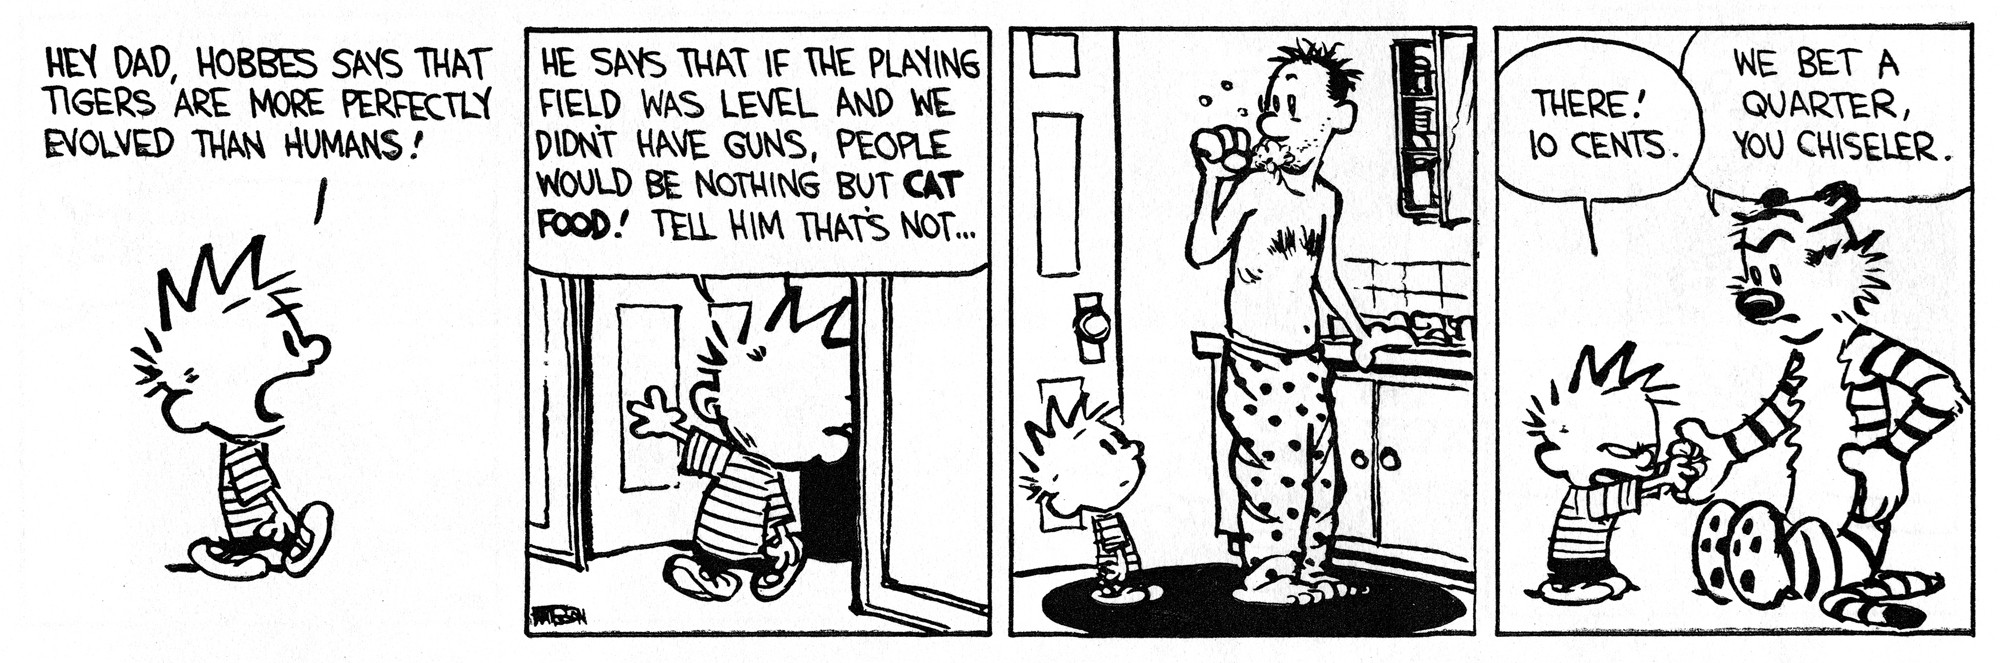 Calvin and Hobbes strip 034 © Bill Watterson